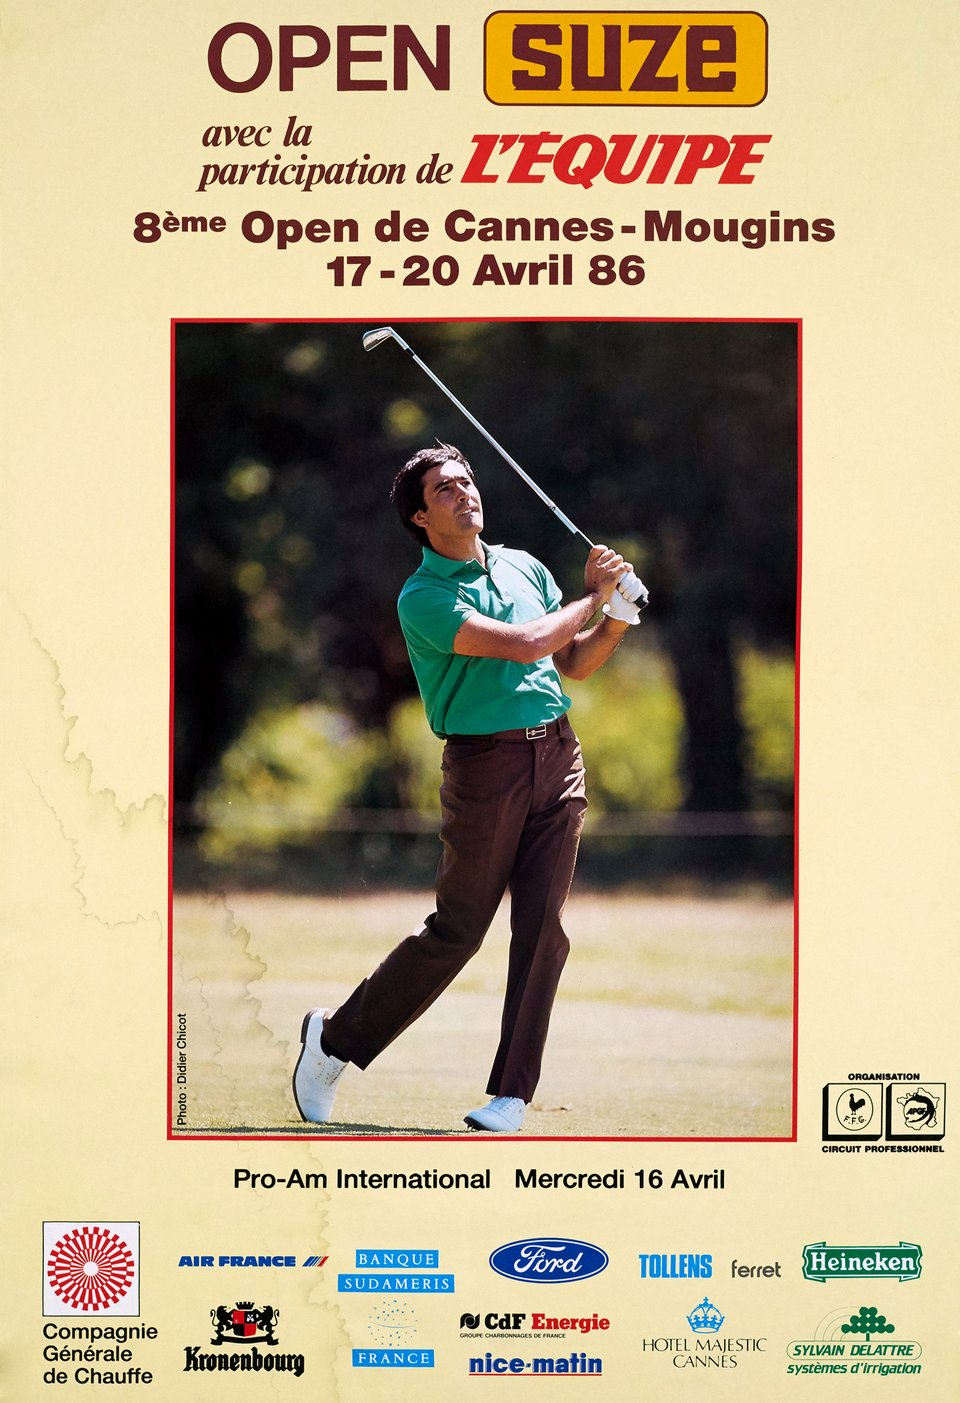 8e Open de Cannes Mougins, Open Suze – Affiche ancienne – Didier CHICOT – 1986